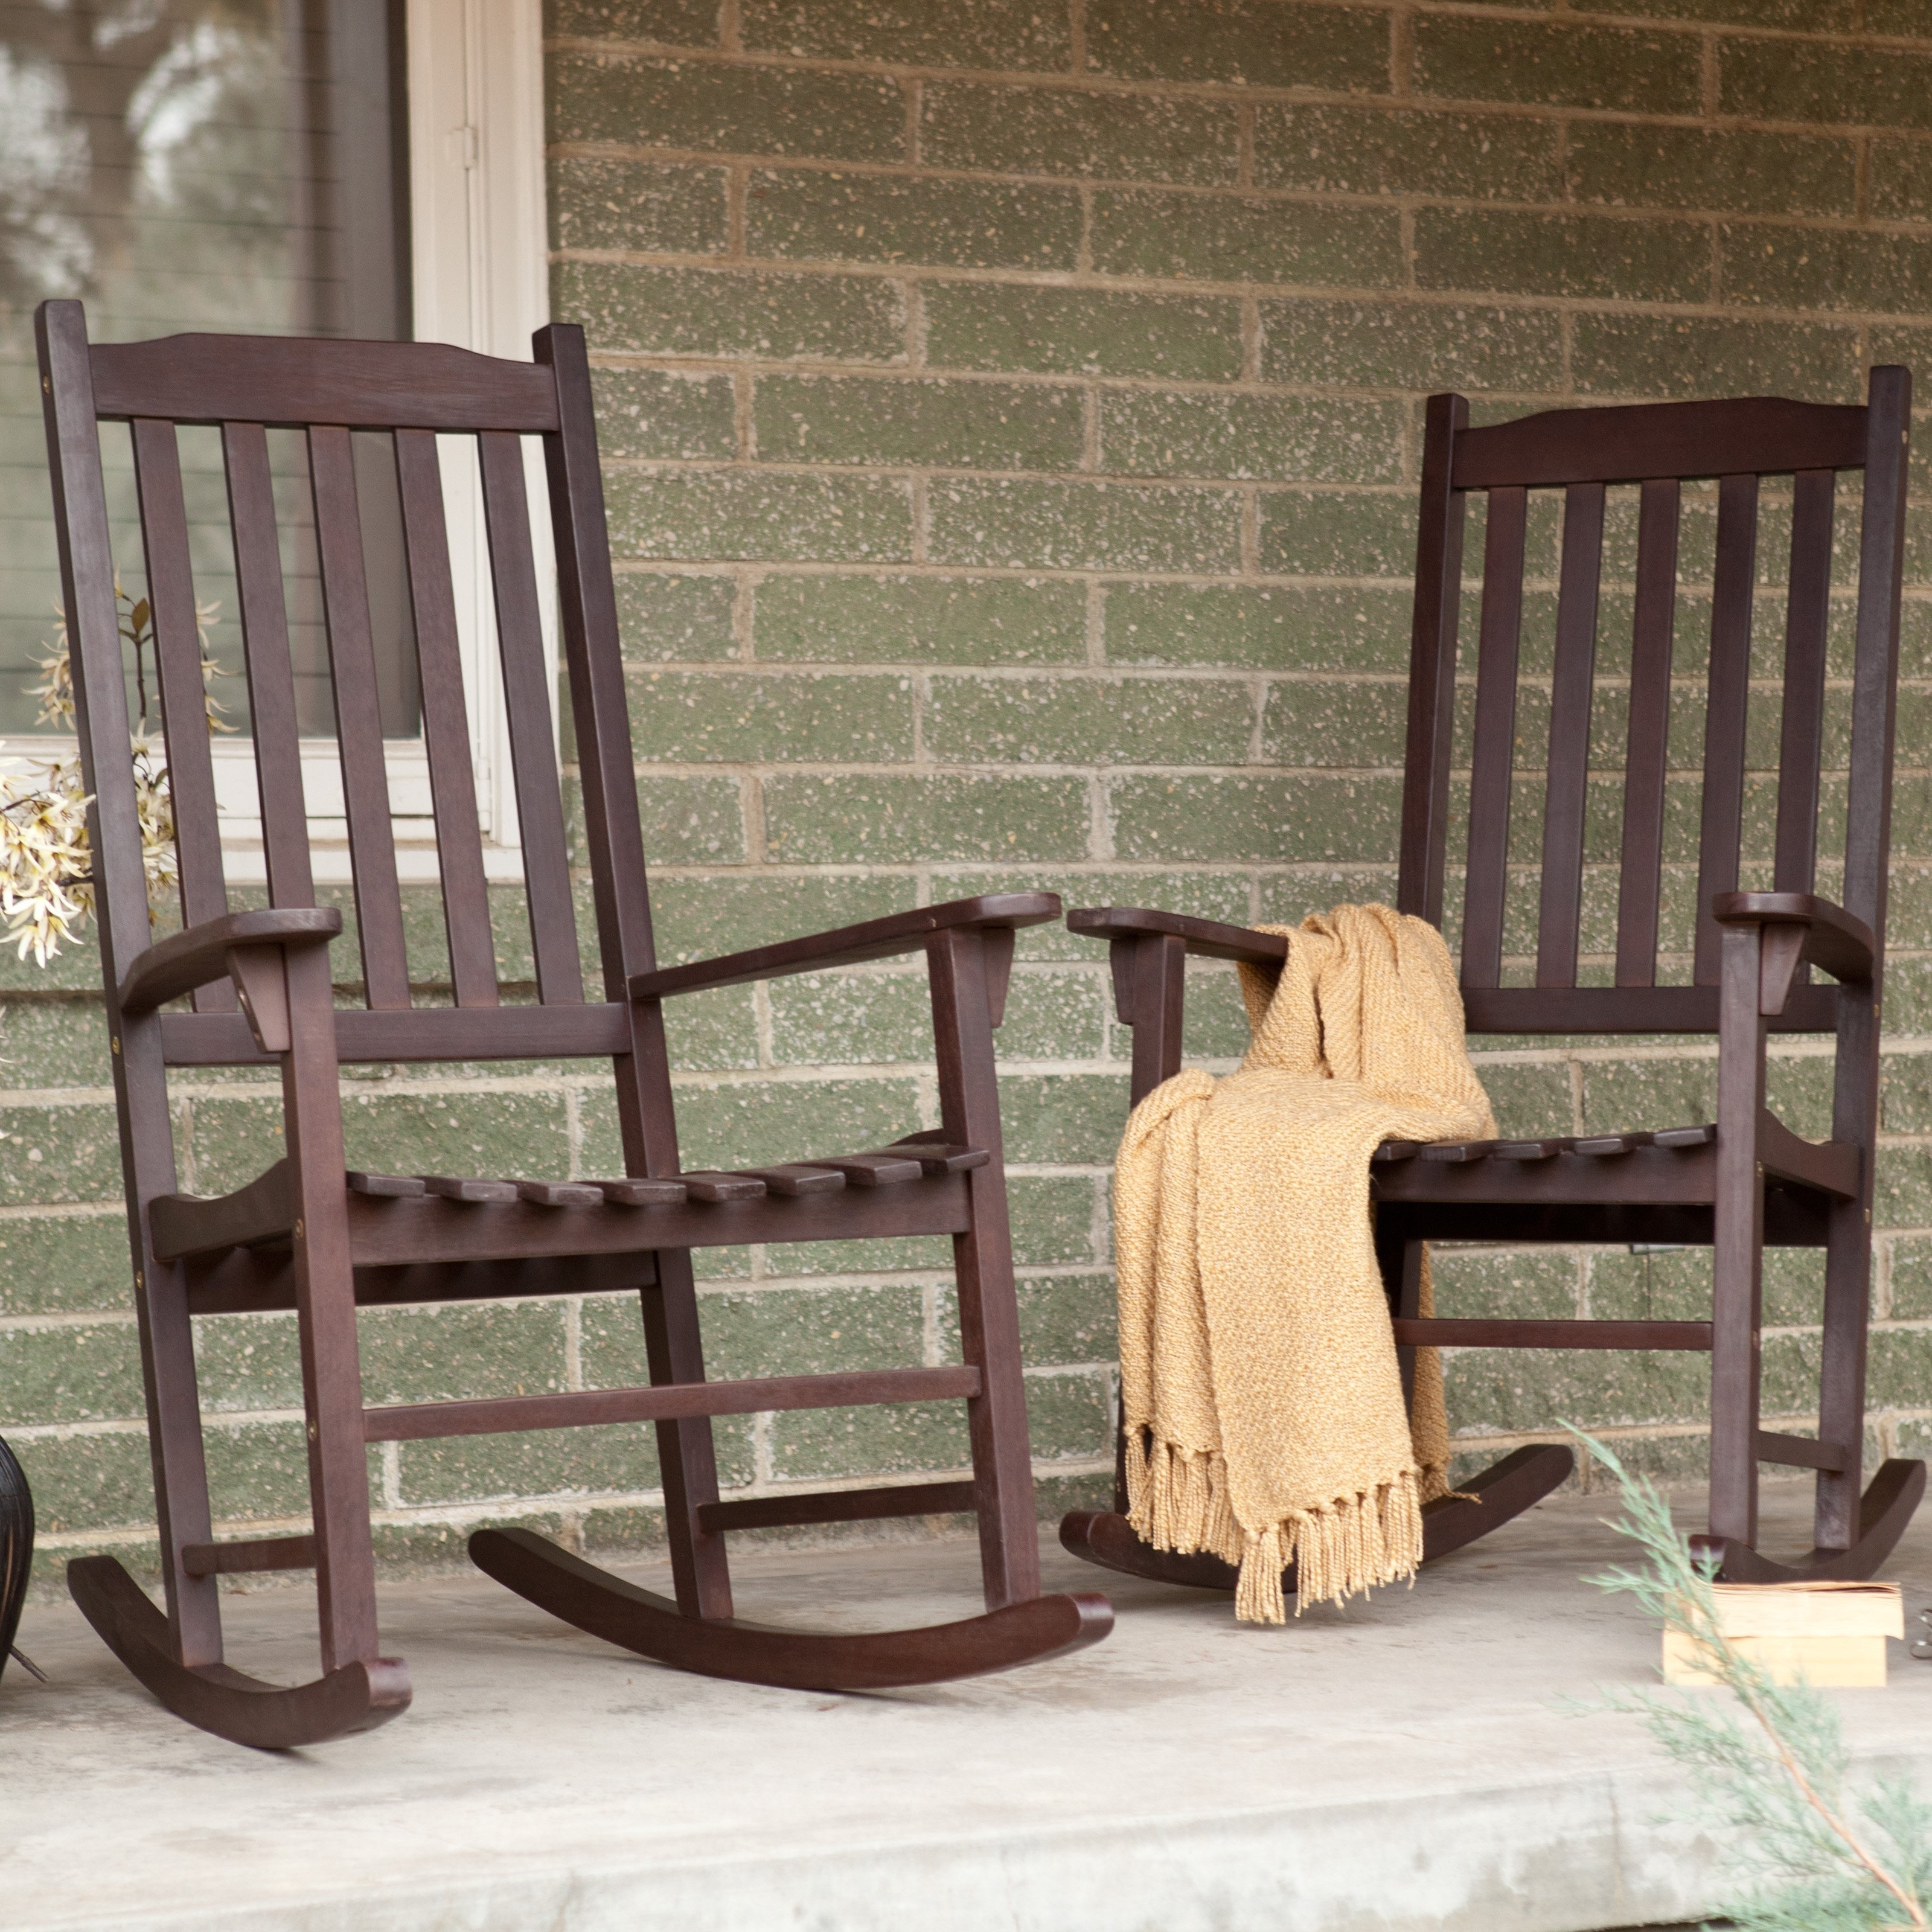 Outdoor Rocking Chair : Time To Relax – Goodworksfurniture Intended For Fashionable Oversized Patio Rocking Chairs (View 7 of 20)